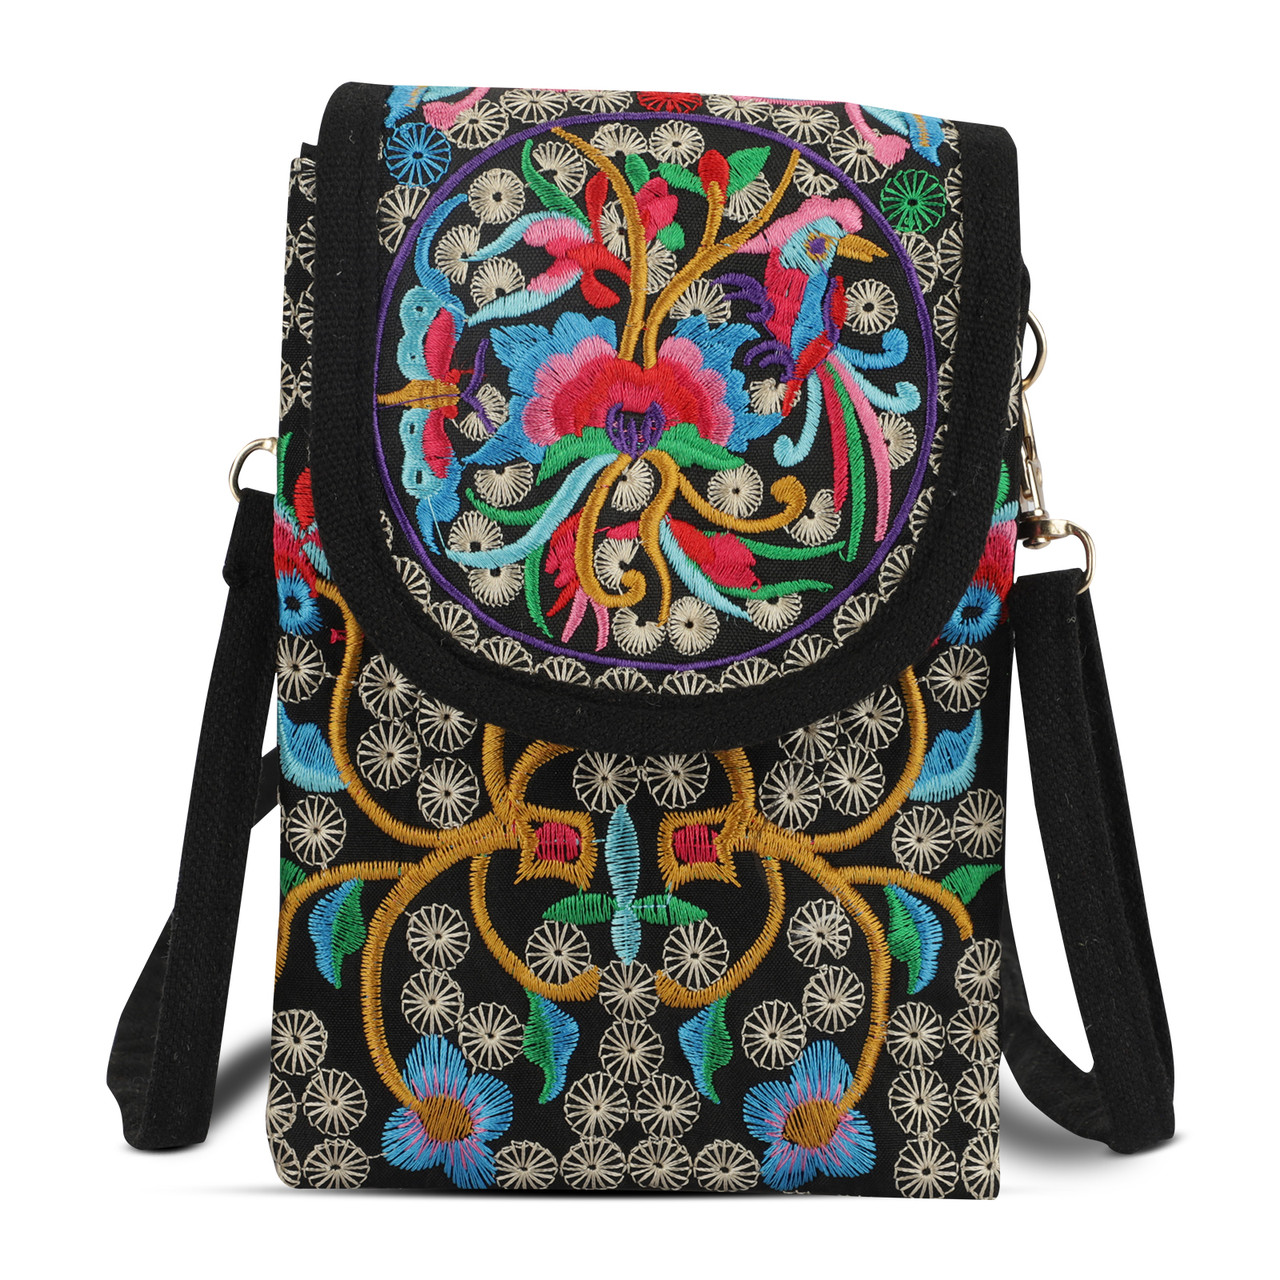 Women Embroidery Bag Crossbody Shoulder Bag Ethnic Mobile Phone Tote Coin Purse